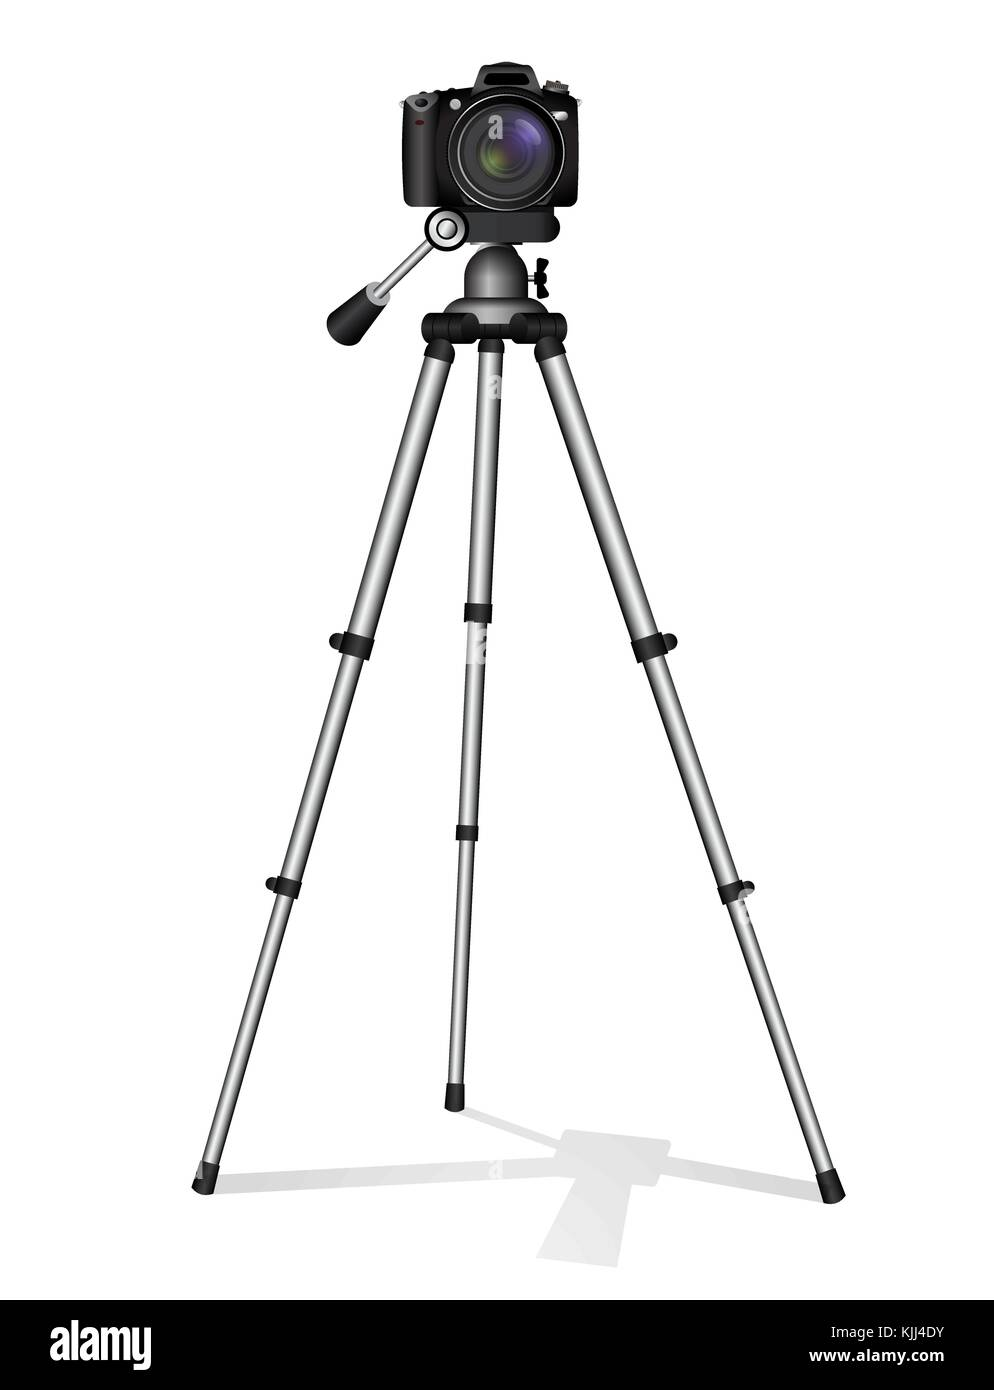 SLR camera on a tripod. Metal construction. Take a photo, movie or video. - Stock Vector